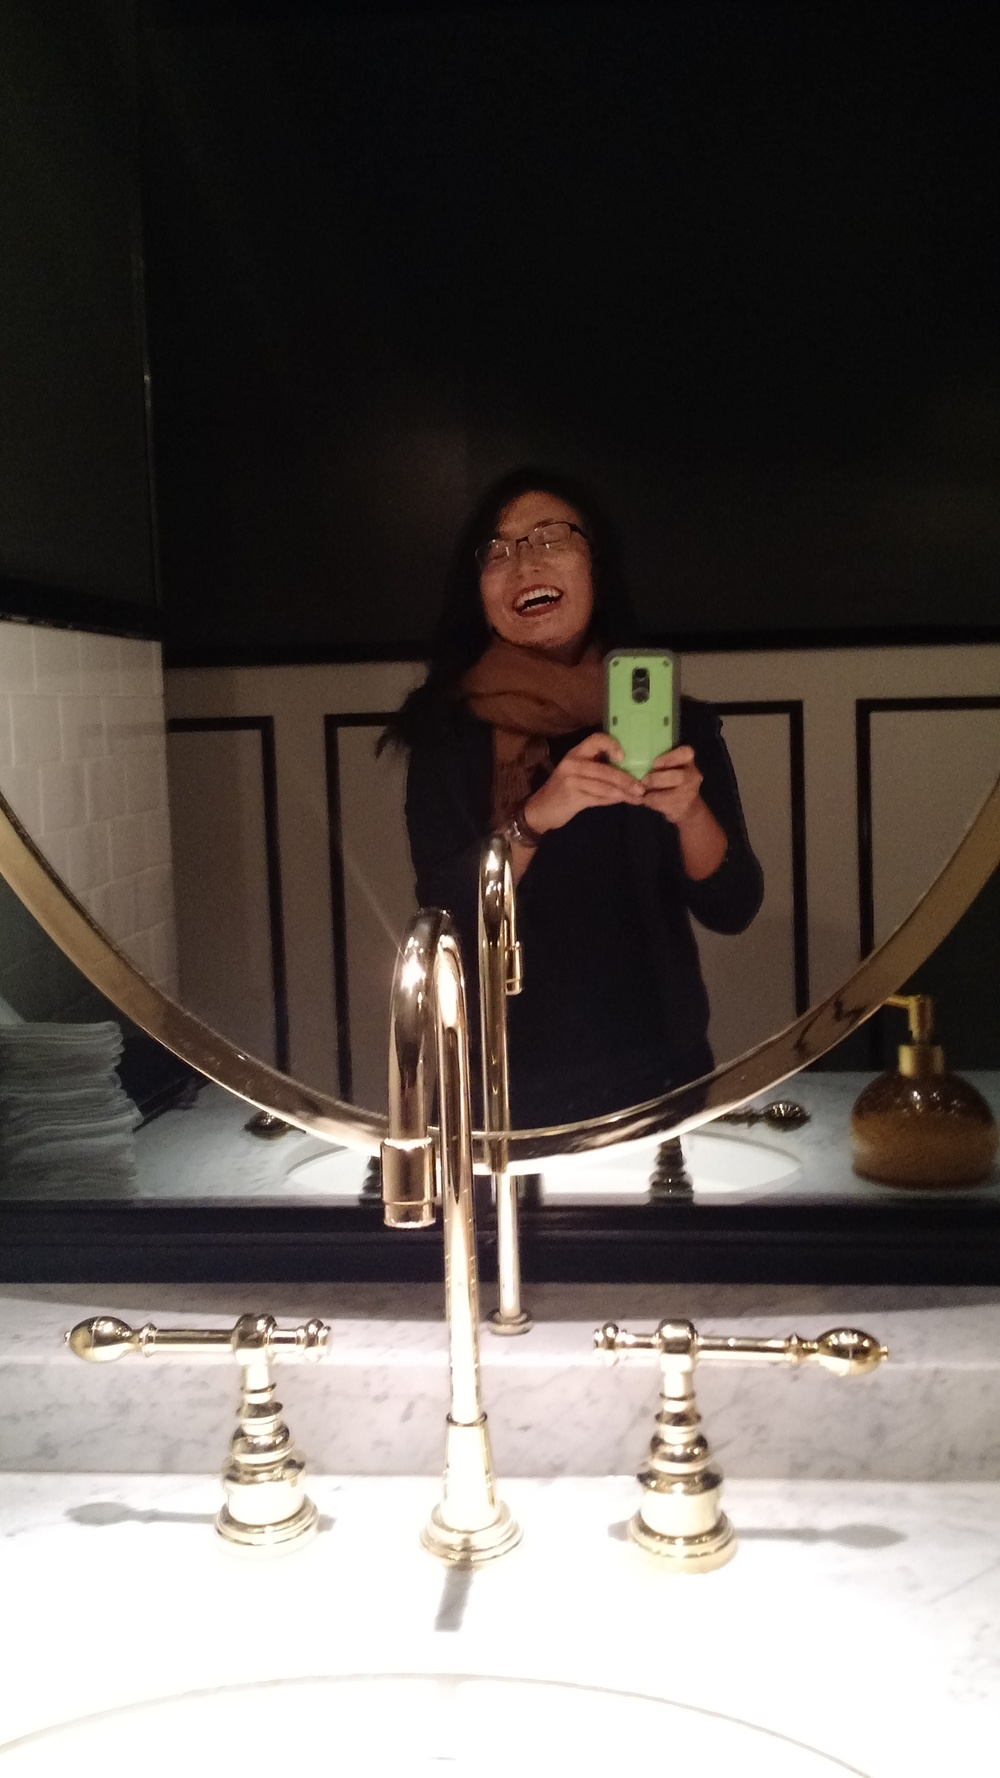 DAY 3 DINNER RESTAURANT BARDOT RESTROOM SELFIE